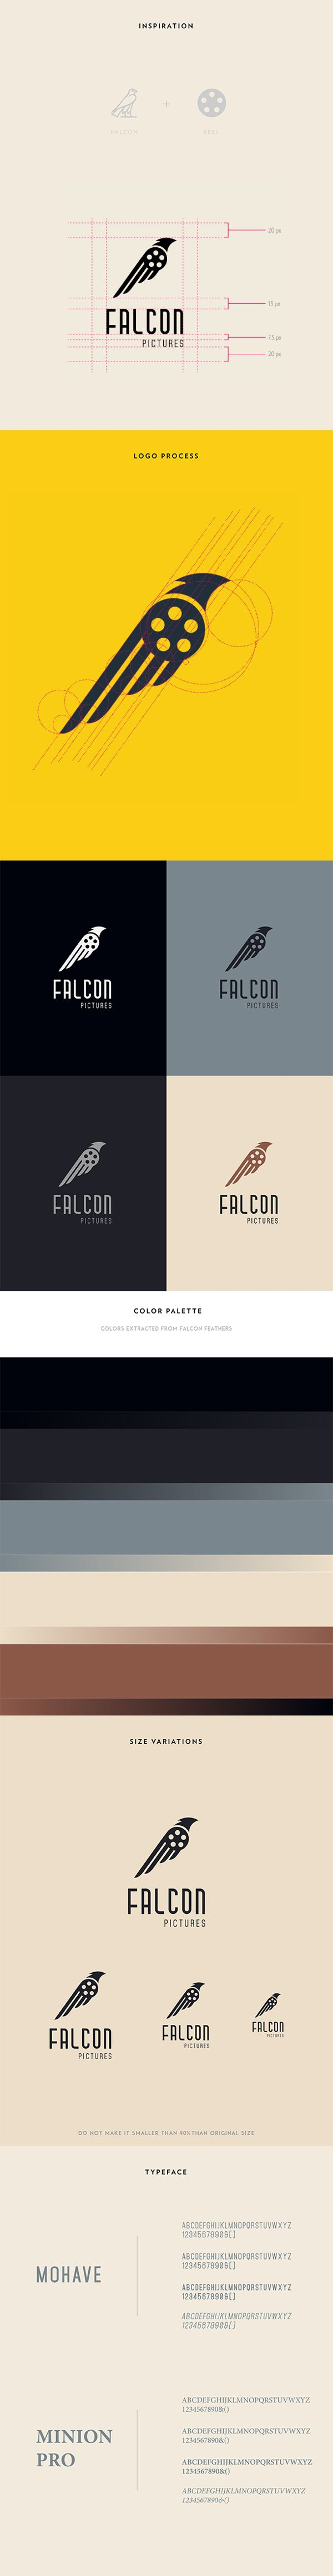 Falcon Pictures Logo Design by Grunz Saint / animal || Introducing Moire Studios a thriving website and graphic design studio. Feel Free to Follow us @moirestudiosjkt to see more amazing pins like this. Or visit our website www.moirestudiosjkt.com to know more about us. #brandIdentityDesign #corporateDesign #logoDesign ||